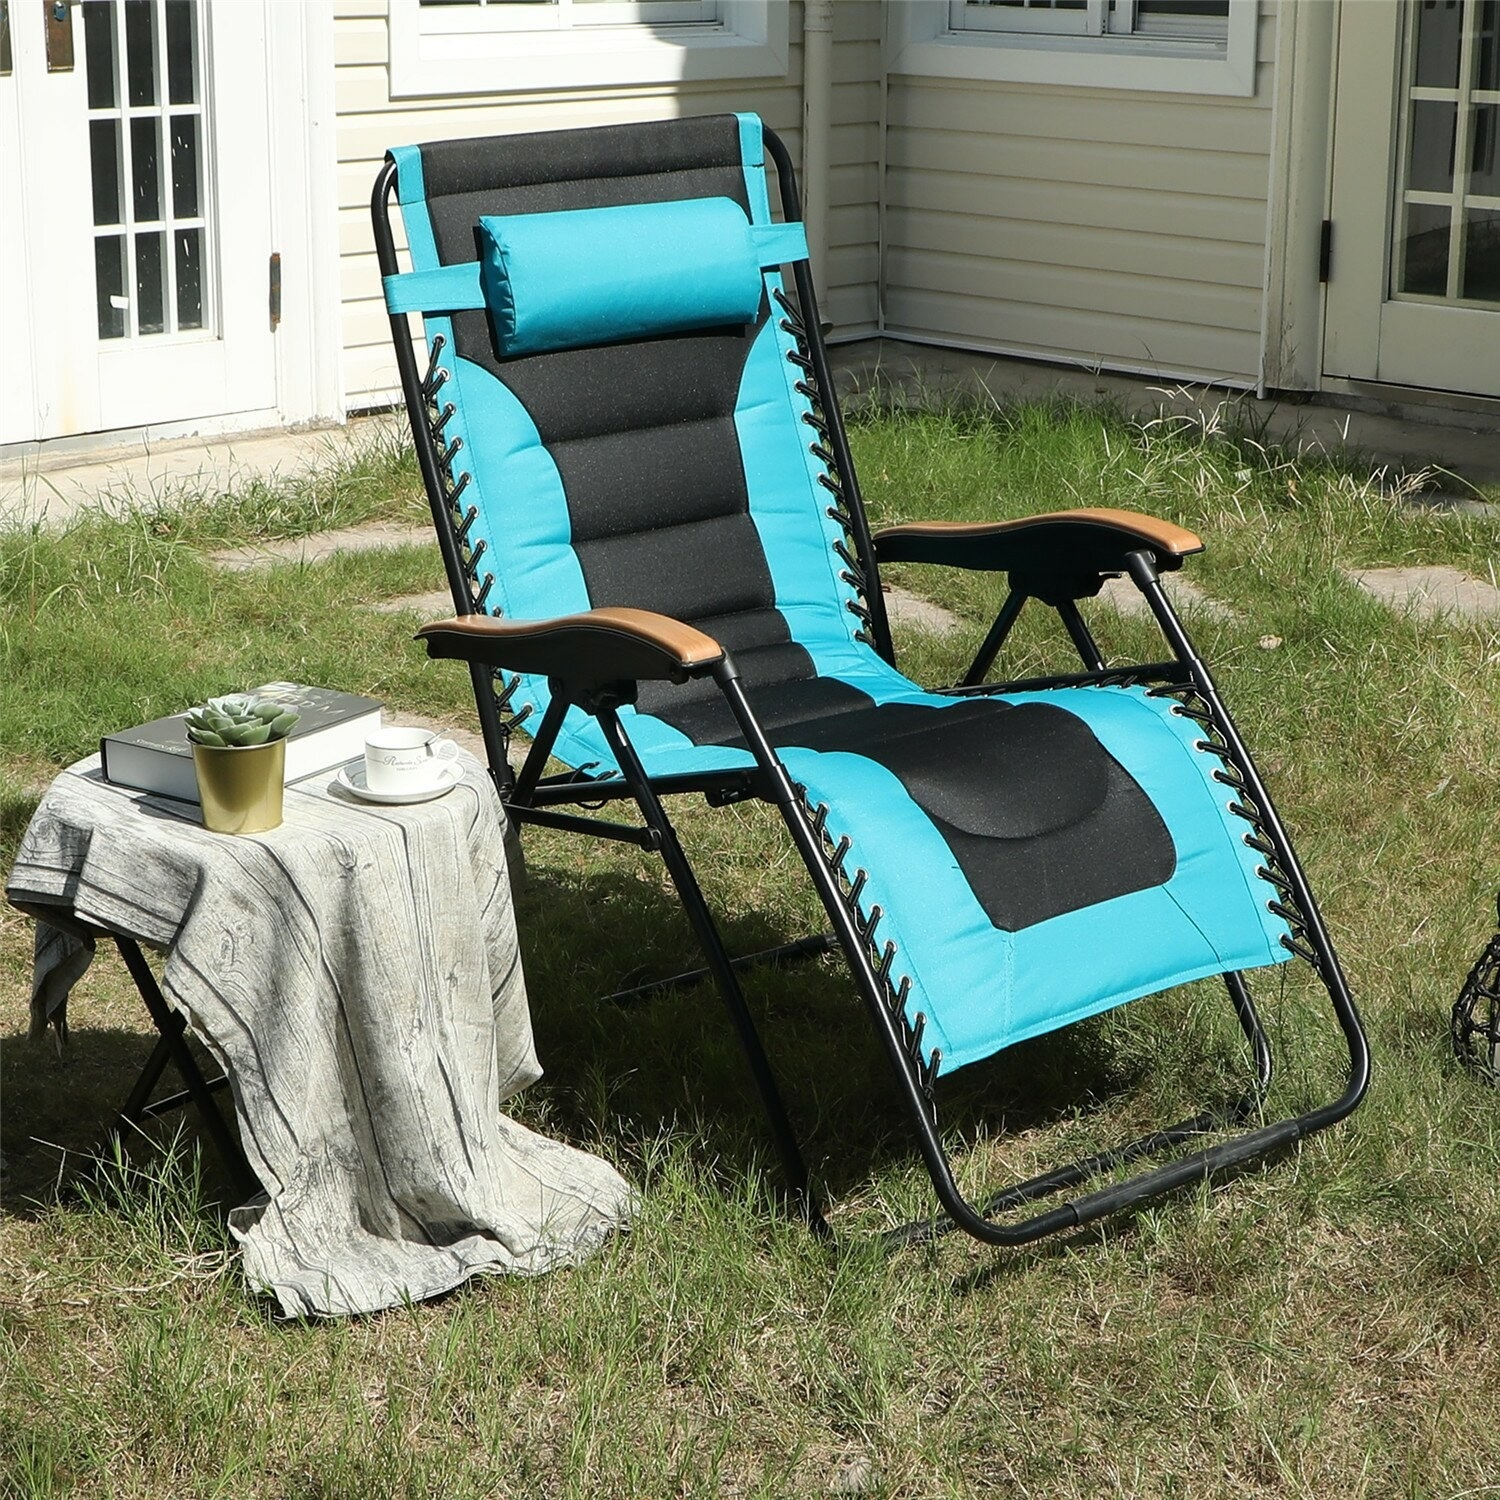 Oversized padded reclining zero gravity chair with added cushioning in aqua and wooden arm rests